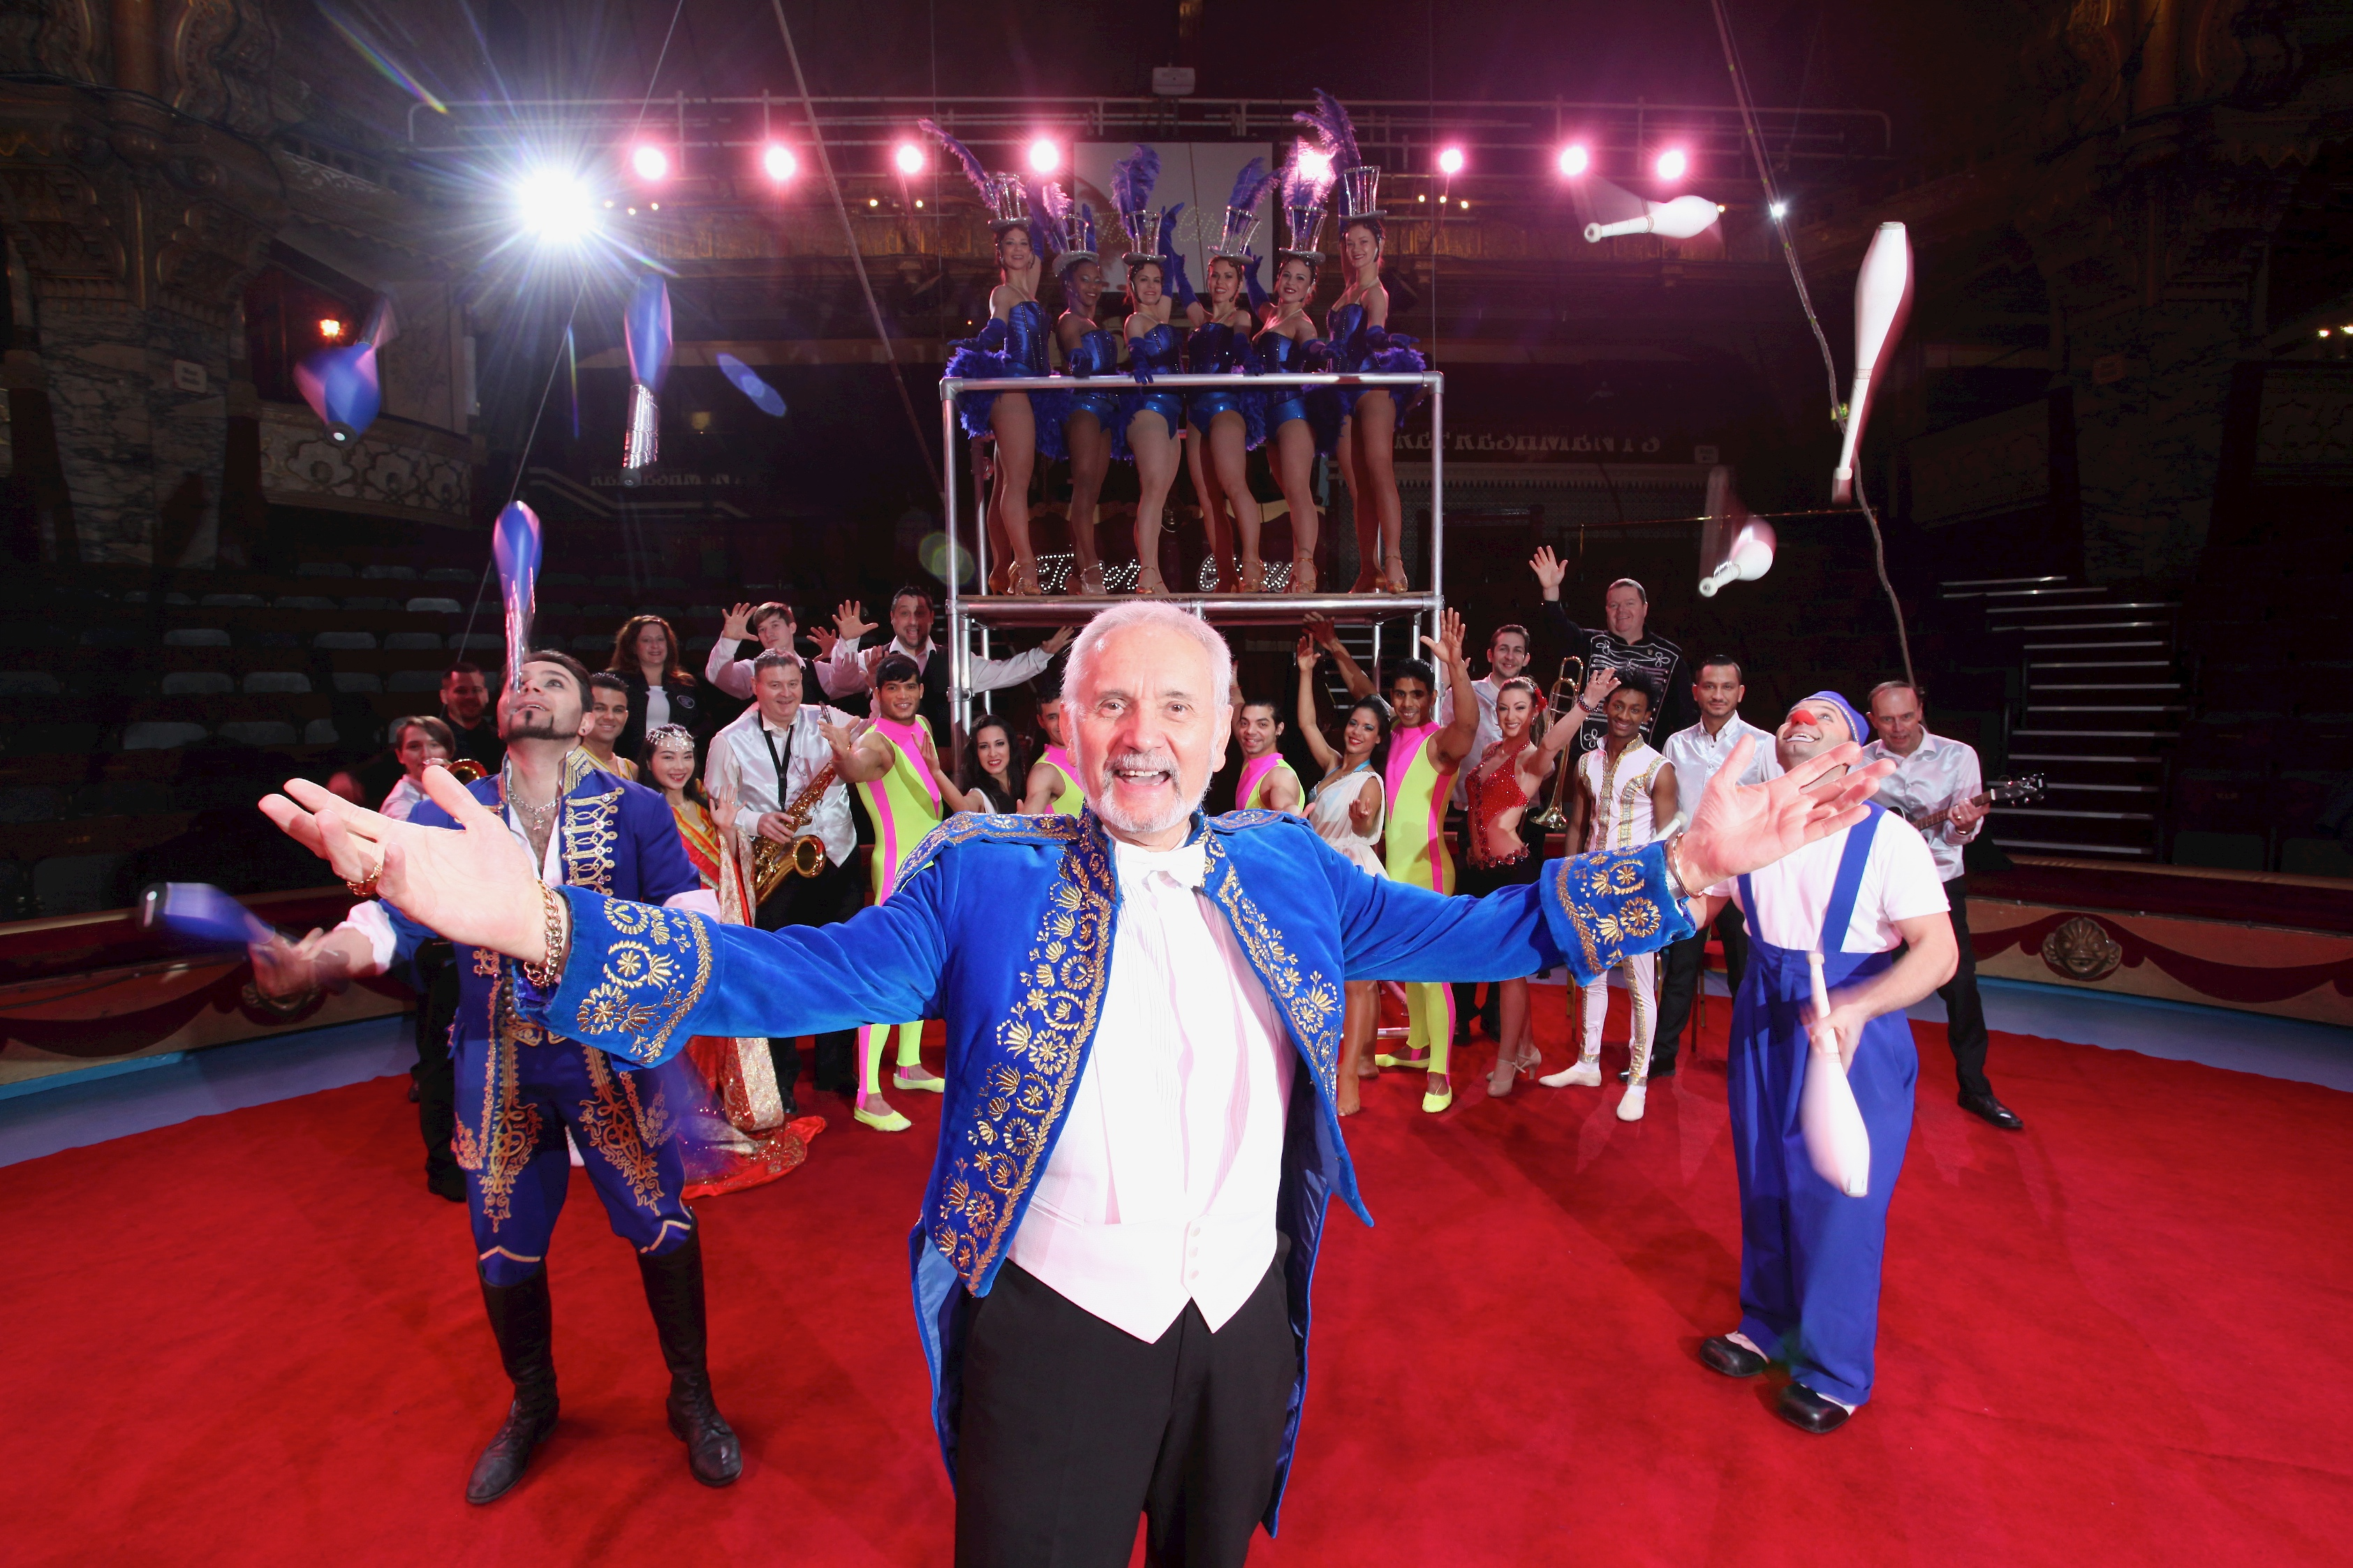 Join the parade and help celebrate 250 years of Big Top magic